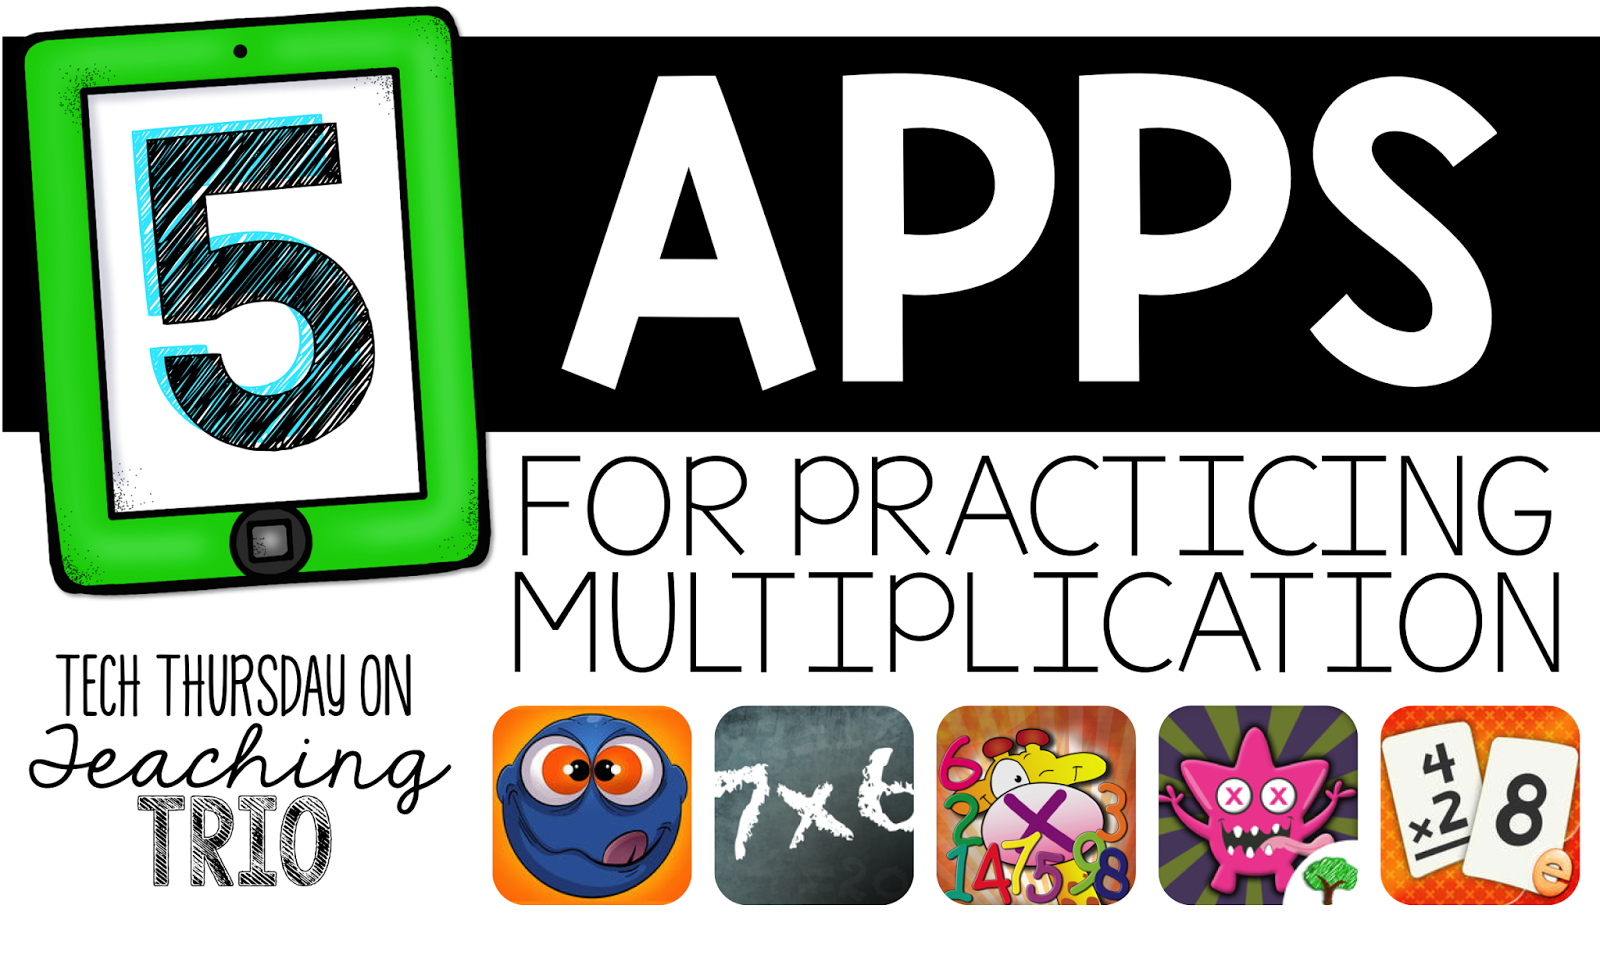 Teaching trio top 5 multiplication apps tech thursday check out our tech thursday page for details on how to link up today i am going to share my 5 go to apps for practicing multiplication facts gamestrikefo Images